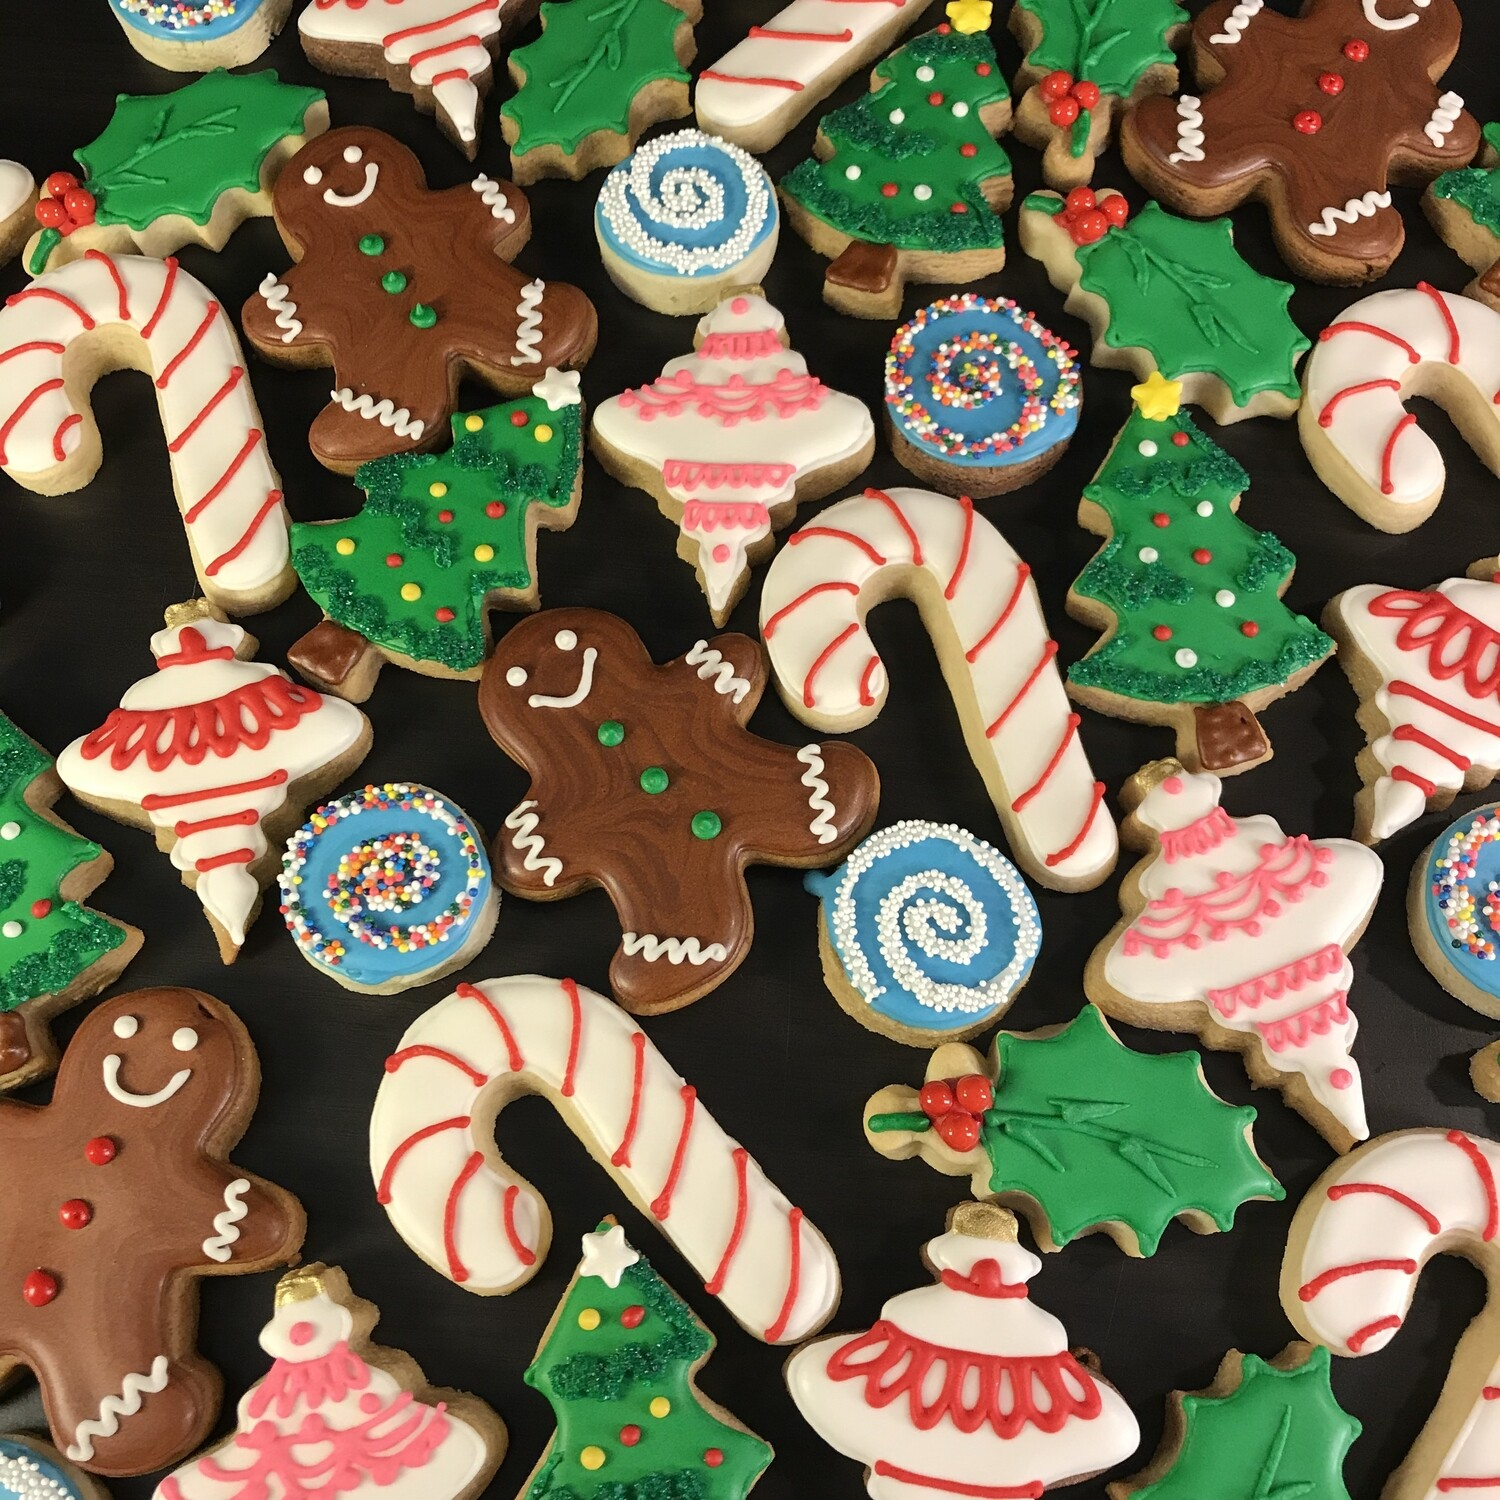 'Christmas Treats Decorating Workshop - SATURDAY, DECEMBER 14th at 6:30 p.m. (THE COOKIE DECORATING STUDIO)